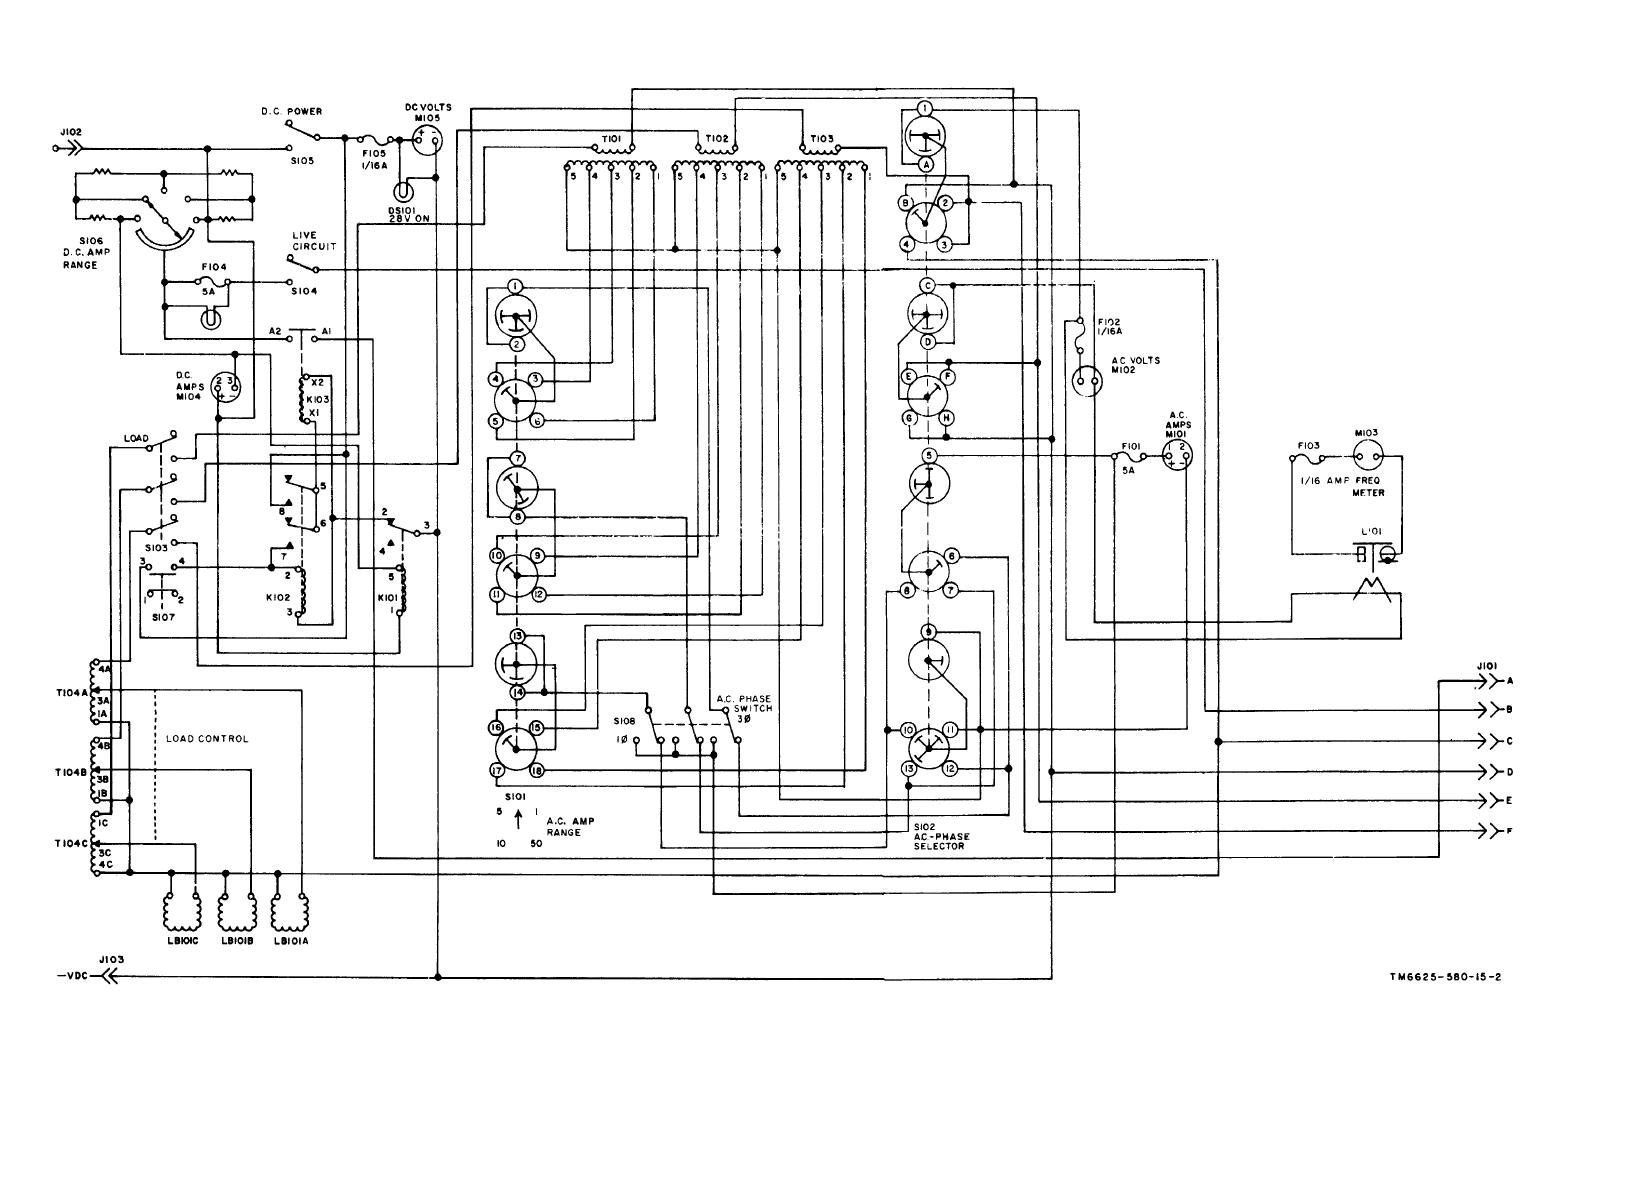 Wiring Schematic Electric Plane, Wiring, Free Engine Image